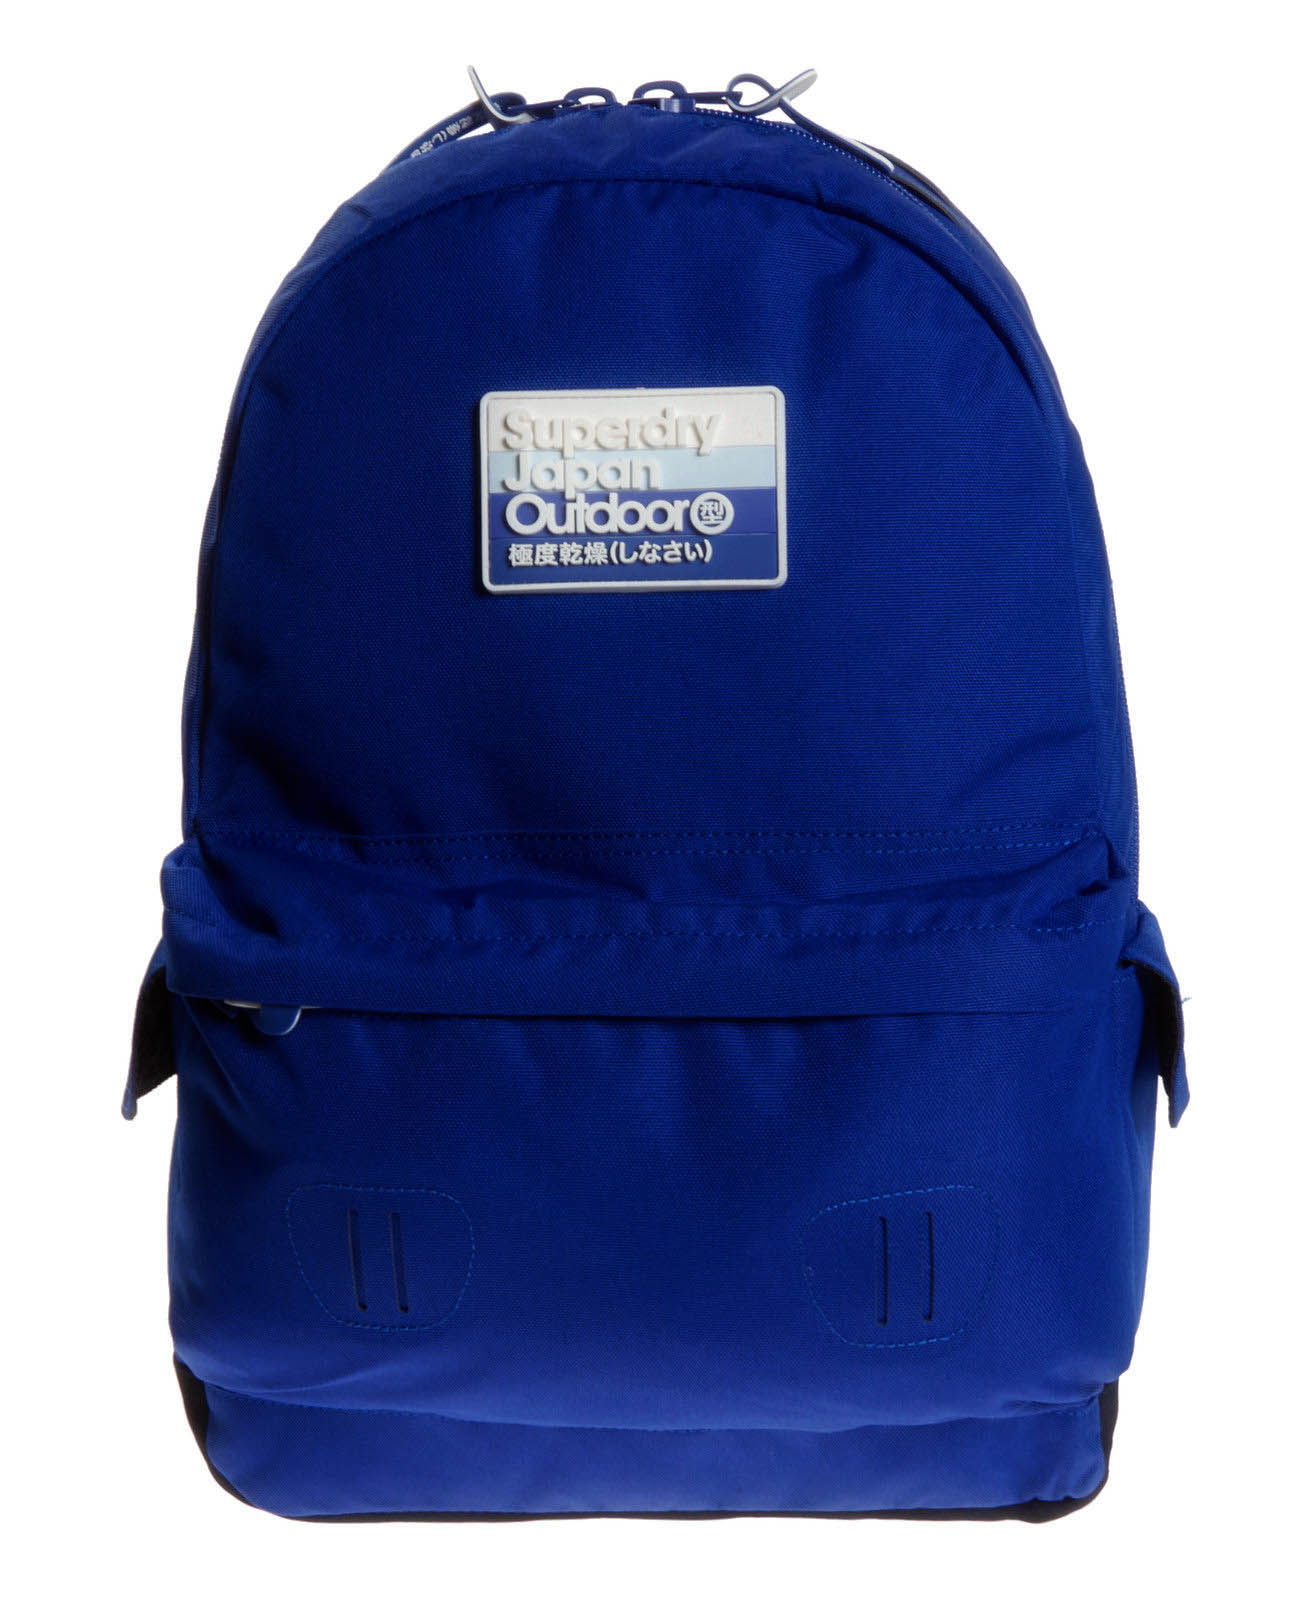 superdry-bags-on-sale-6